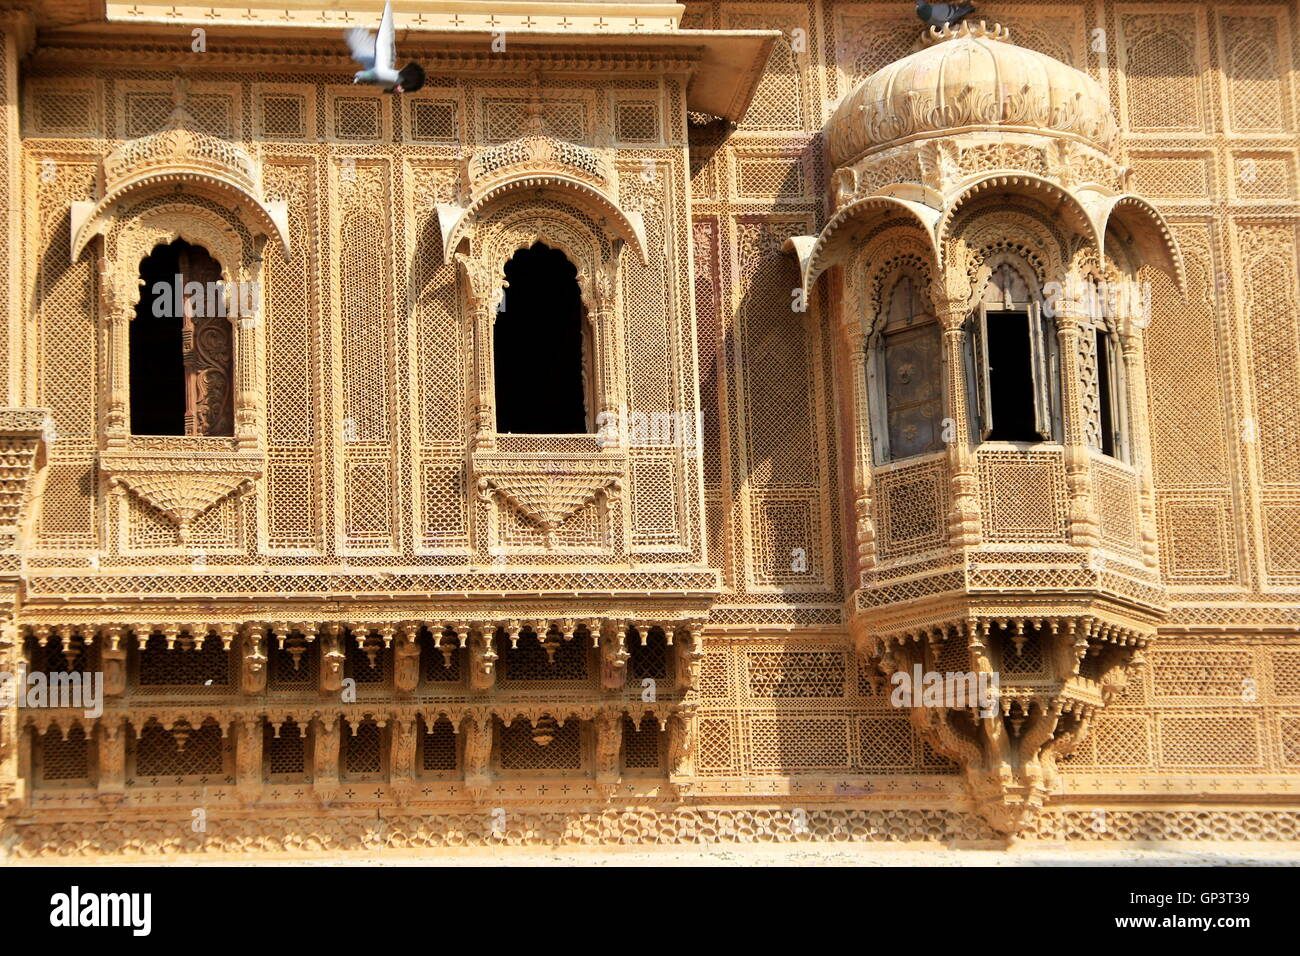 Twin rectangular and single domed balconies of Patawon-ki-Haweli at Jaisalmer Fort in Jaisalmer, Rajasthan, India, - Stock Image